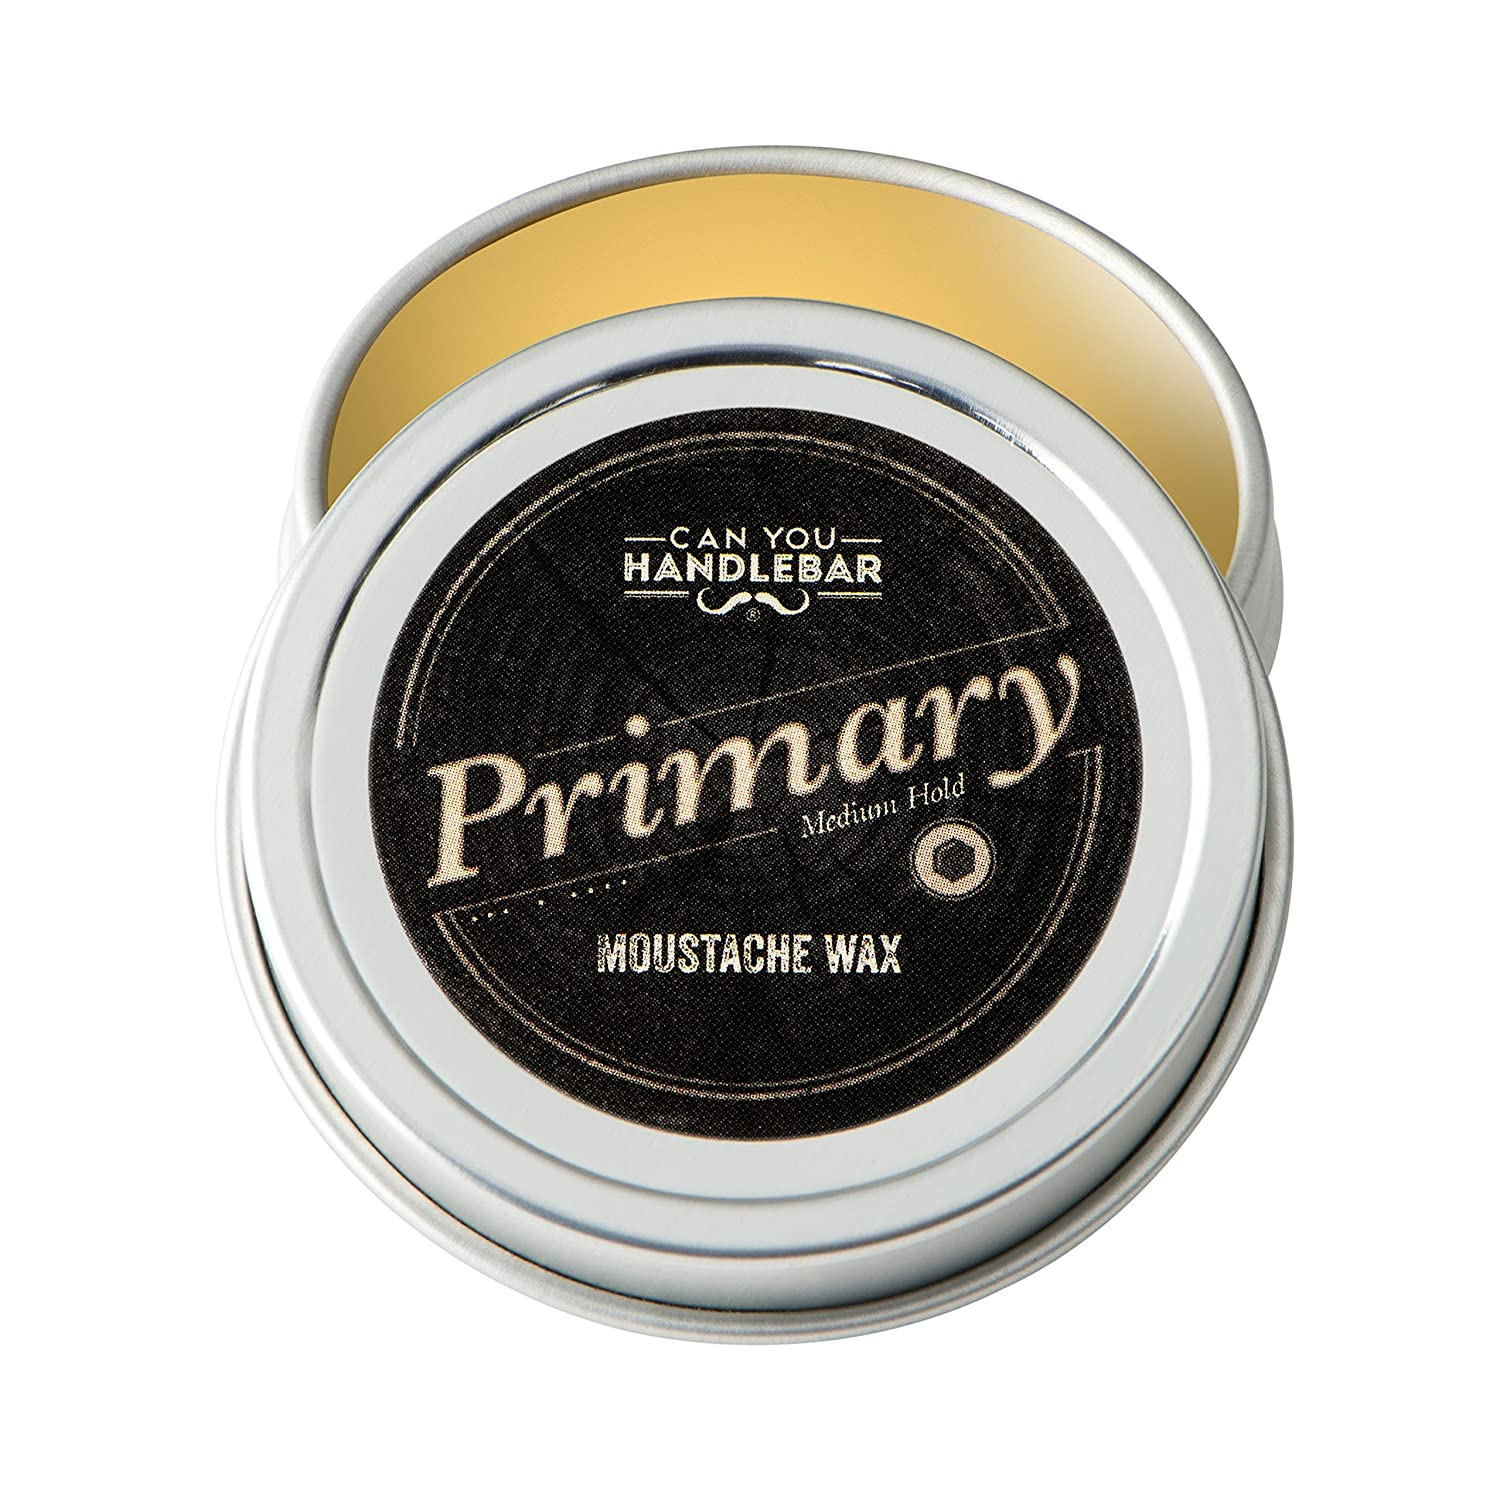 Primary Moustache Wax | Natural, All Day Hold | 1 OZ Can CanYouHandlebar